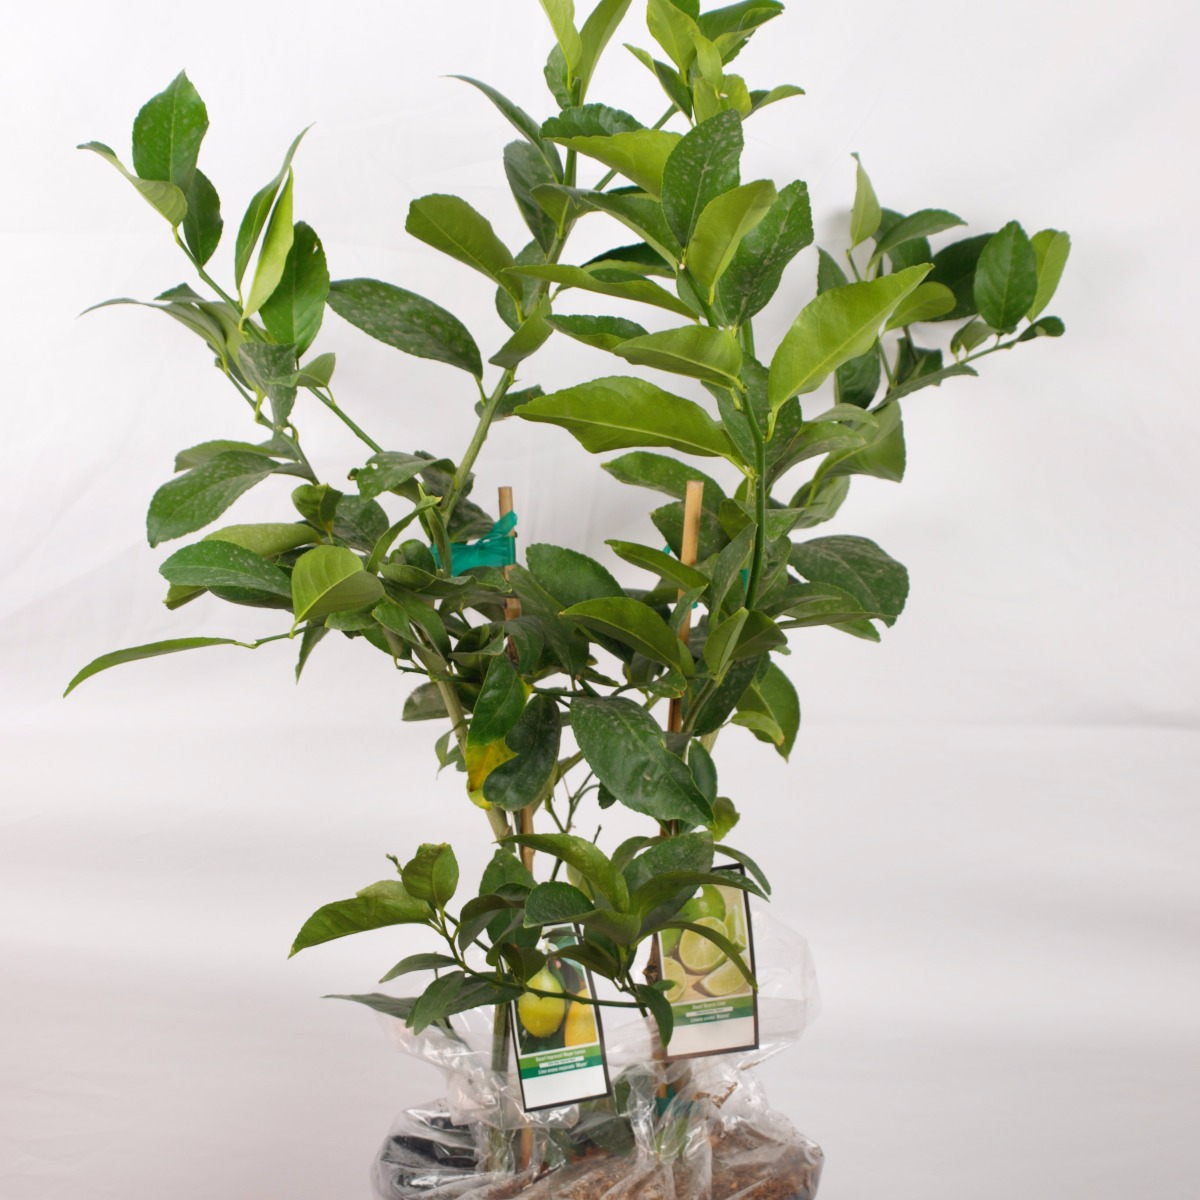 Lemon and Lime Tree 2n1